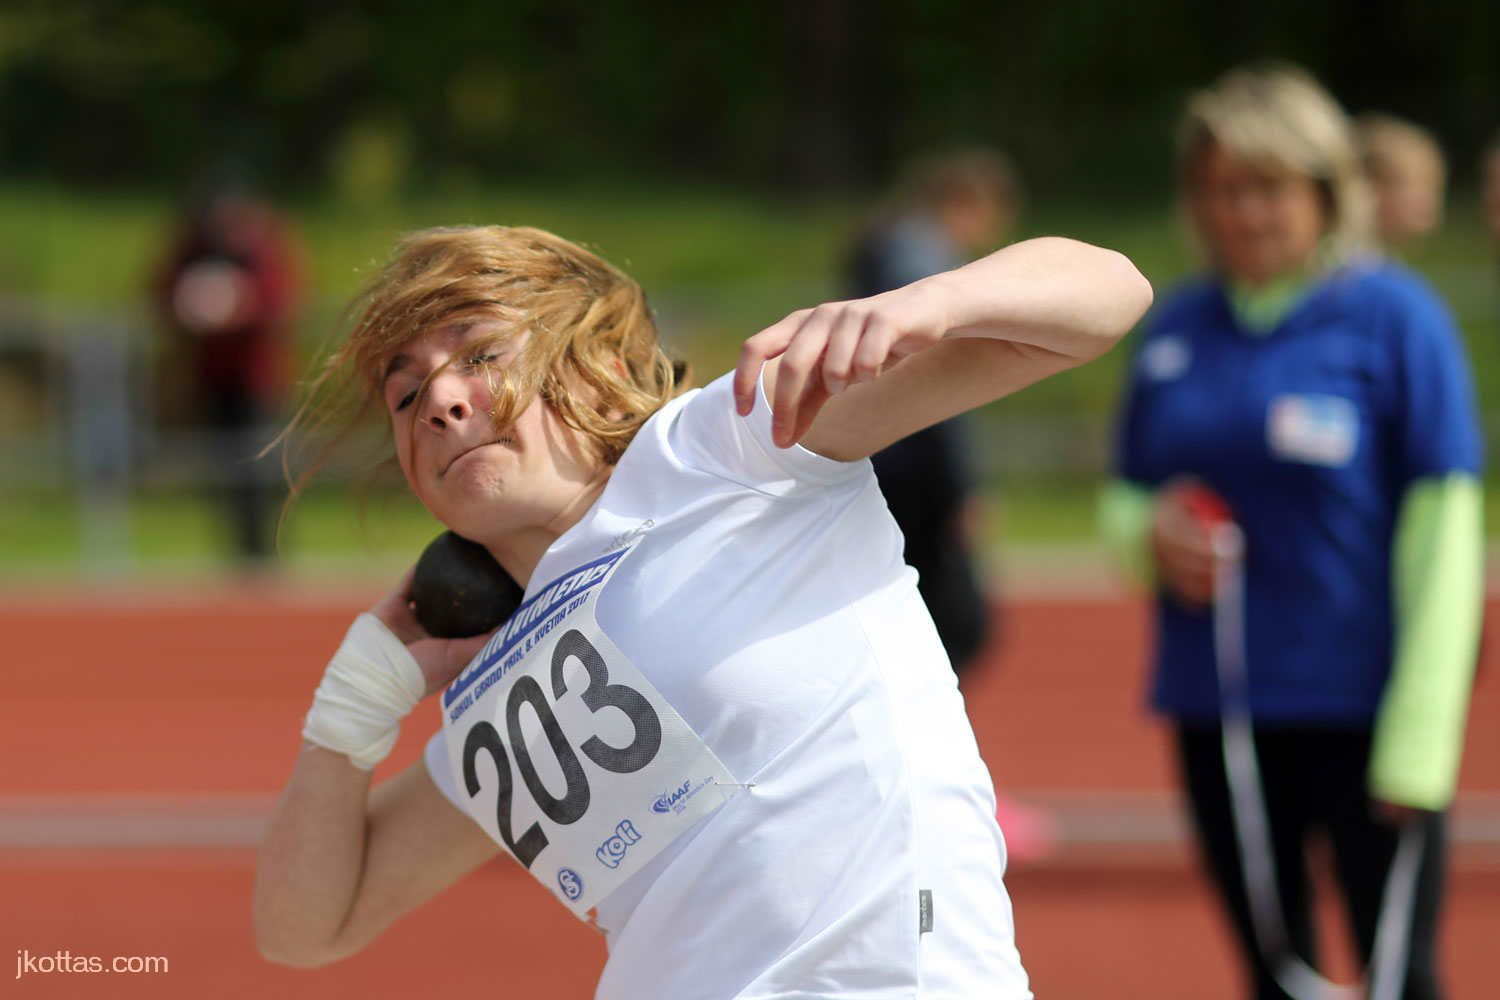 youth-athletics-kolin-04